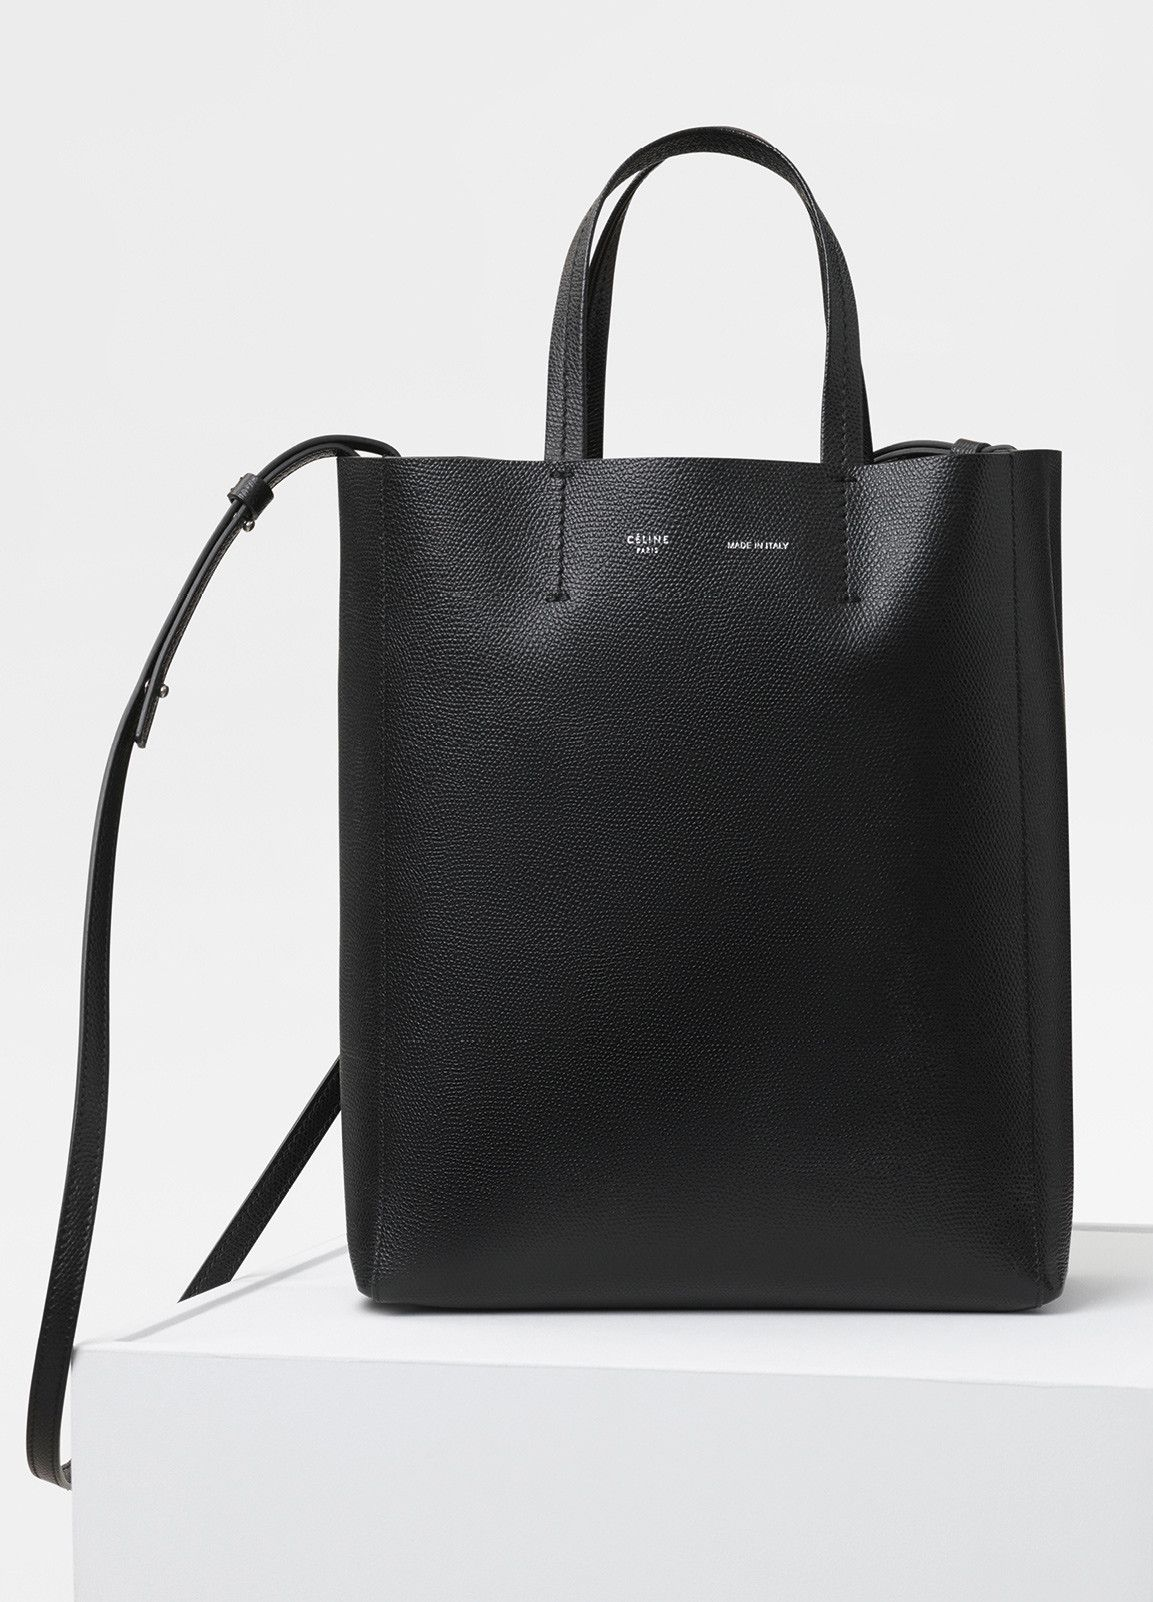 21709f768387 Celine Fall 2017 Vertical Cabas in Black - SMALL CABAS BAG IN GRAINED  CALFSKIN HAND AND